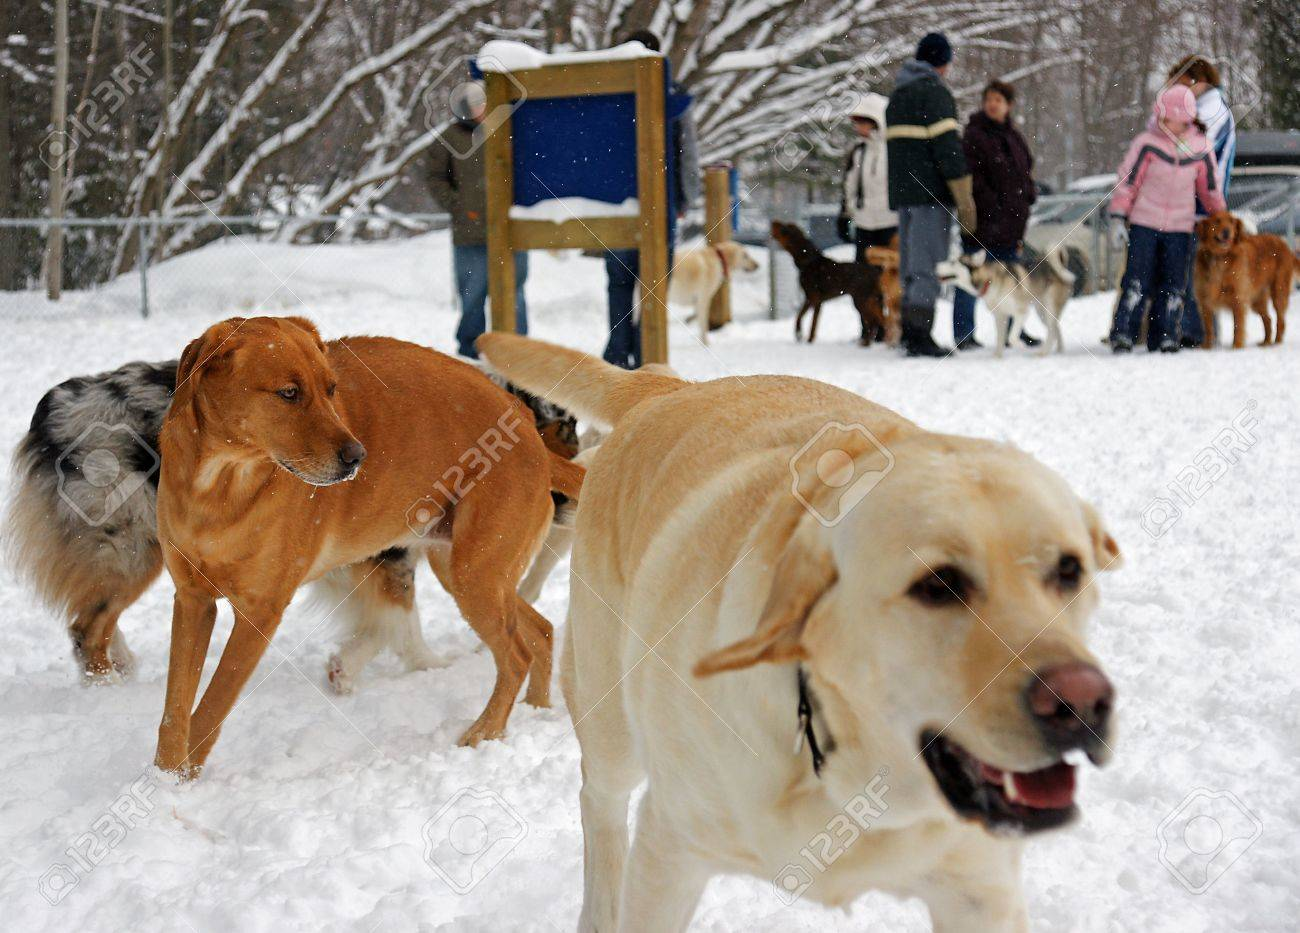 Sunday Afternoon at the Leash Free Dog Park - 4173814